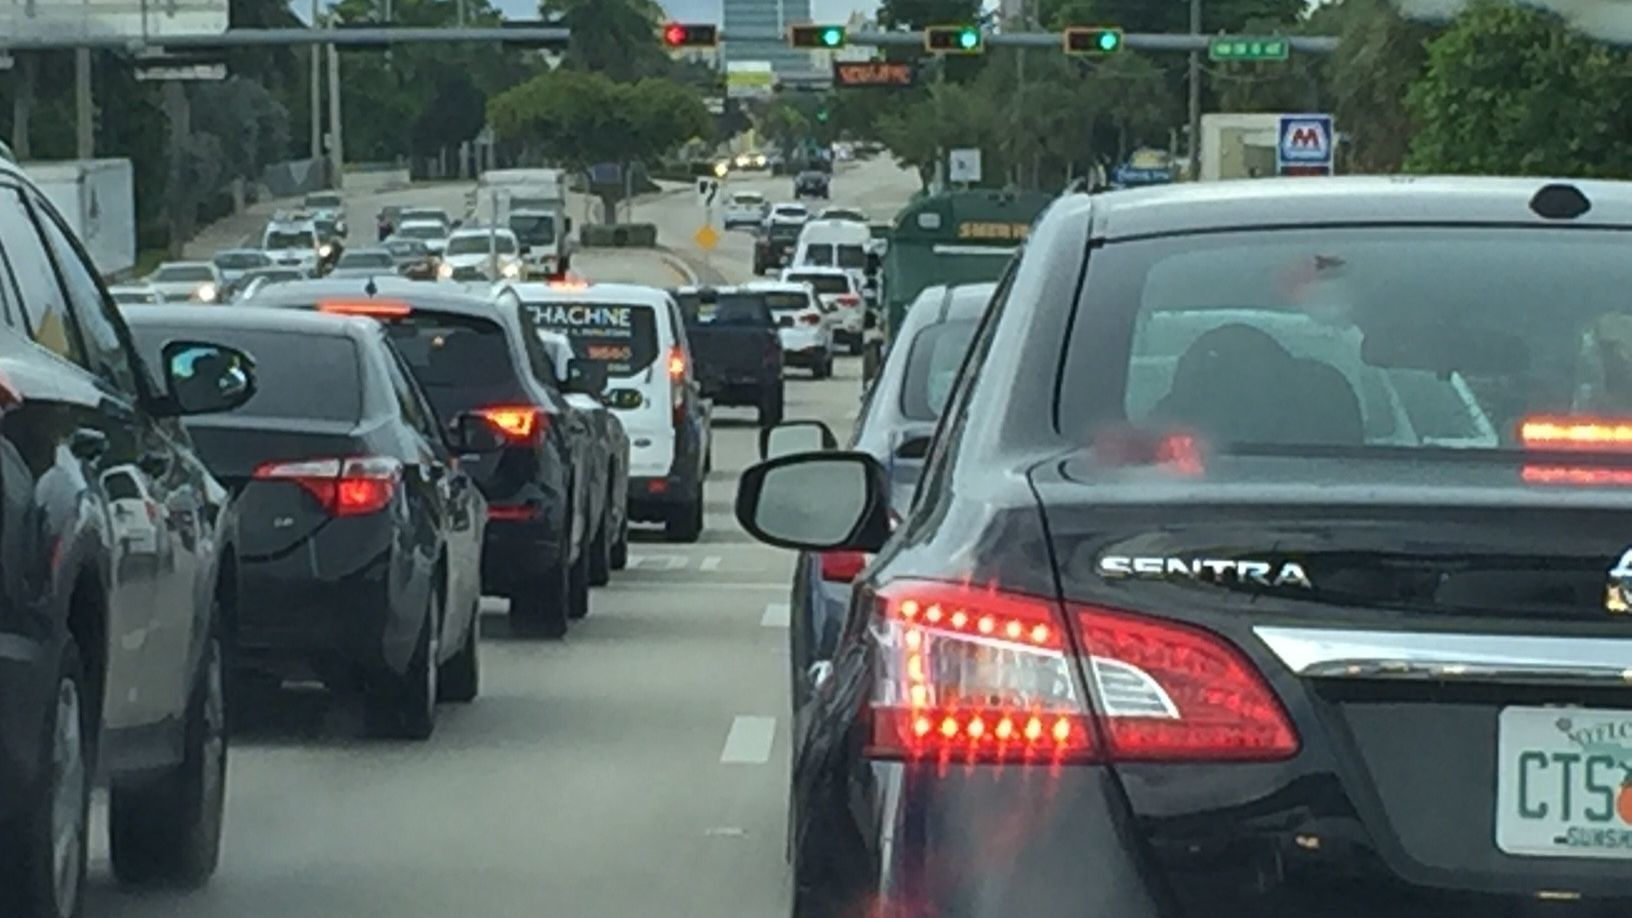 Traffic has never been worse, frustrated Fort Lauderdale residents tell researchers